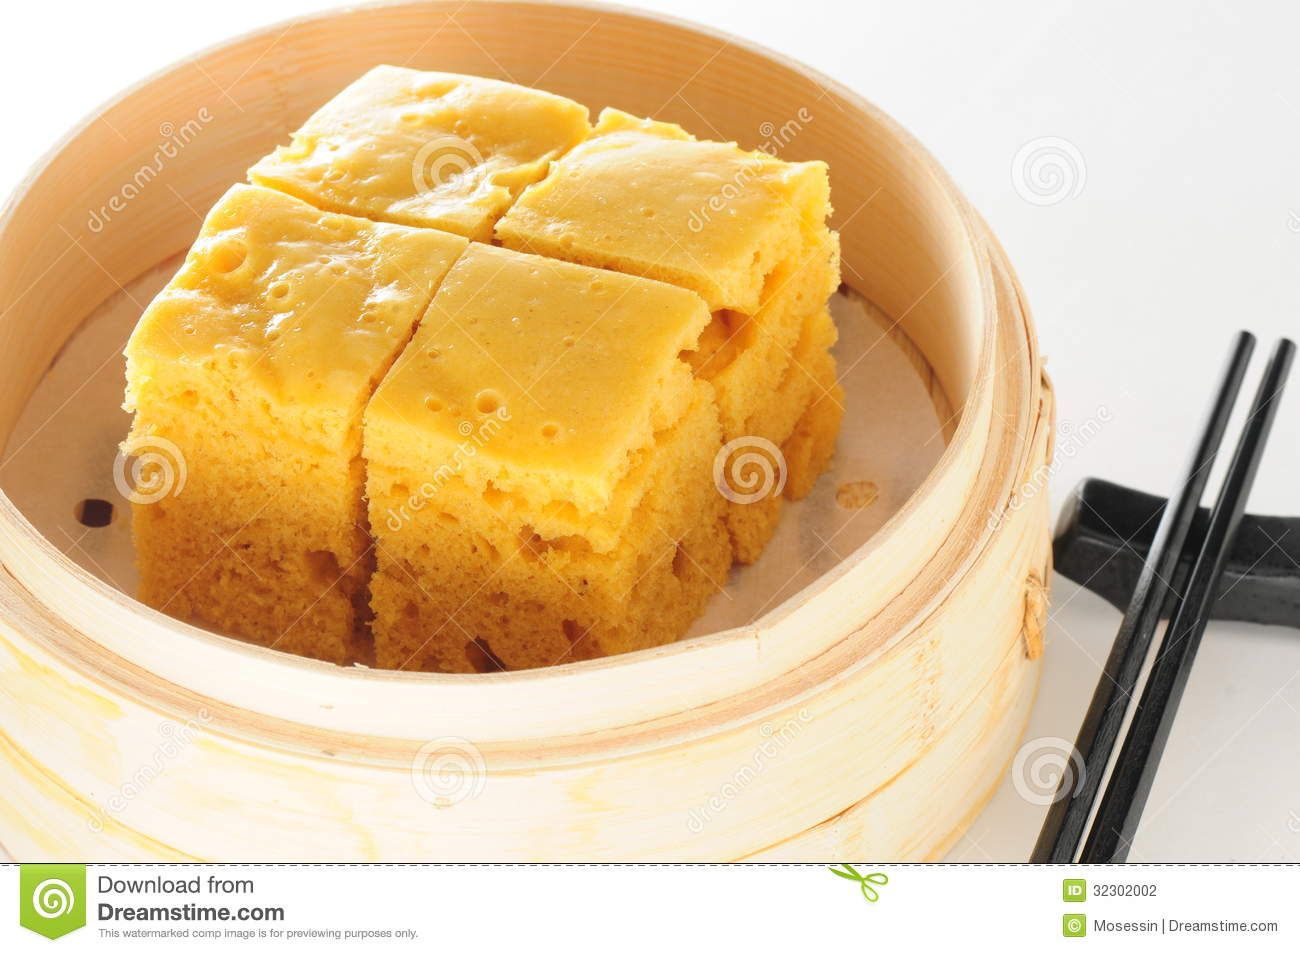 Malay Sponge Cake Stock Photography - Image: 32302002